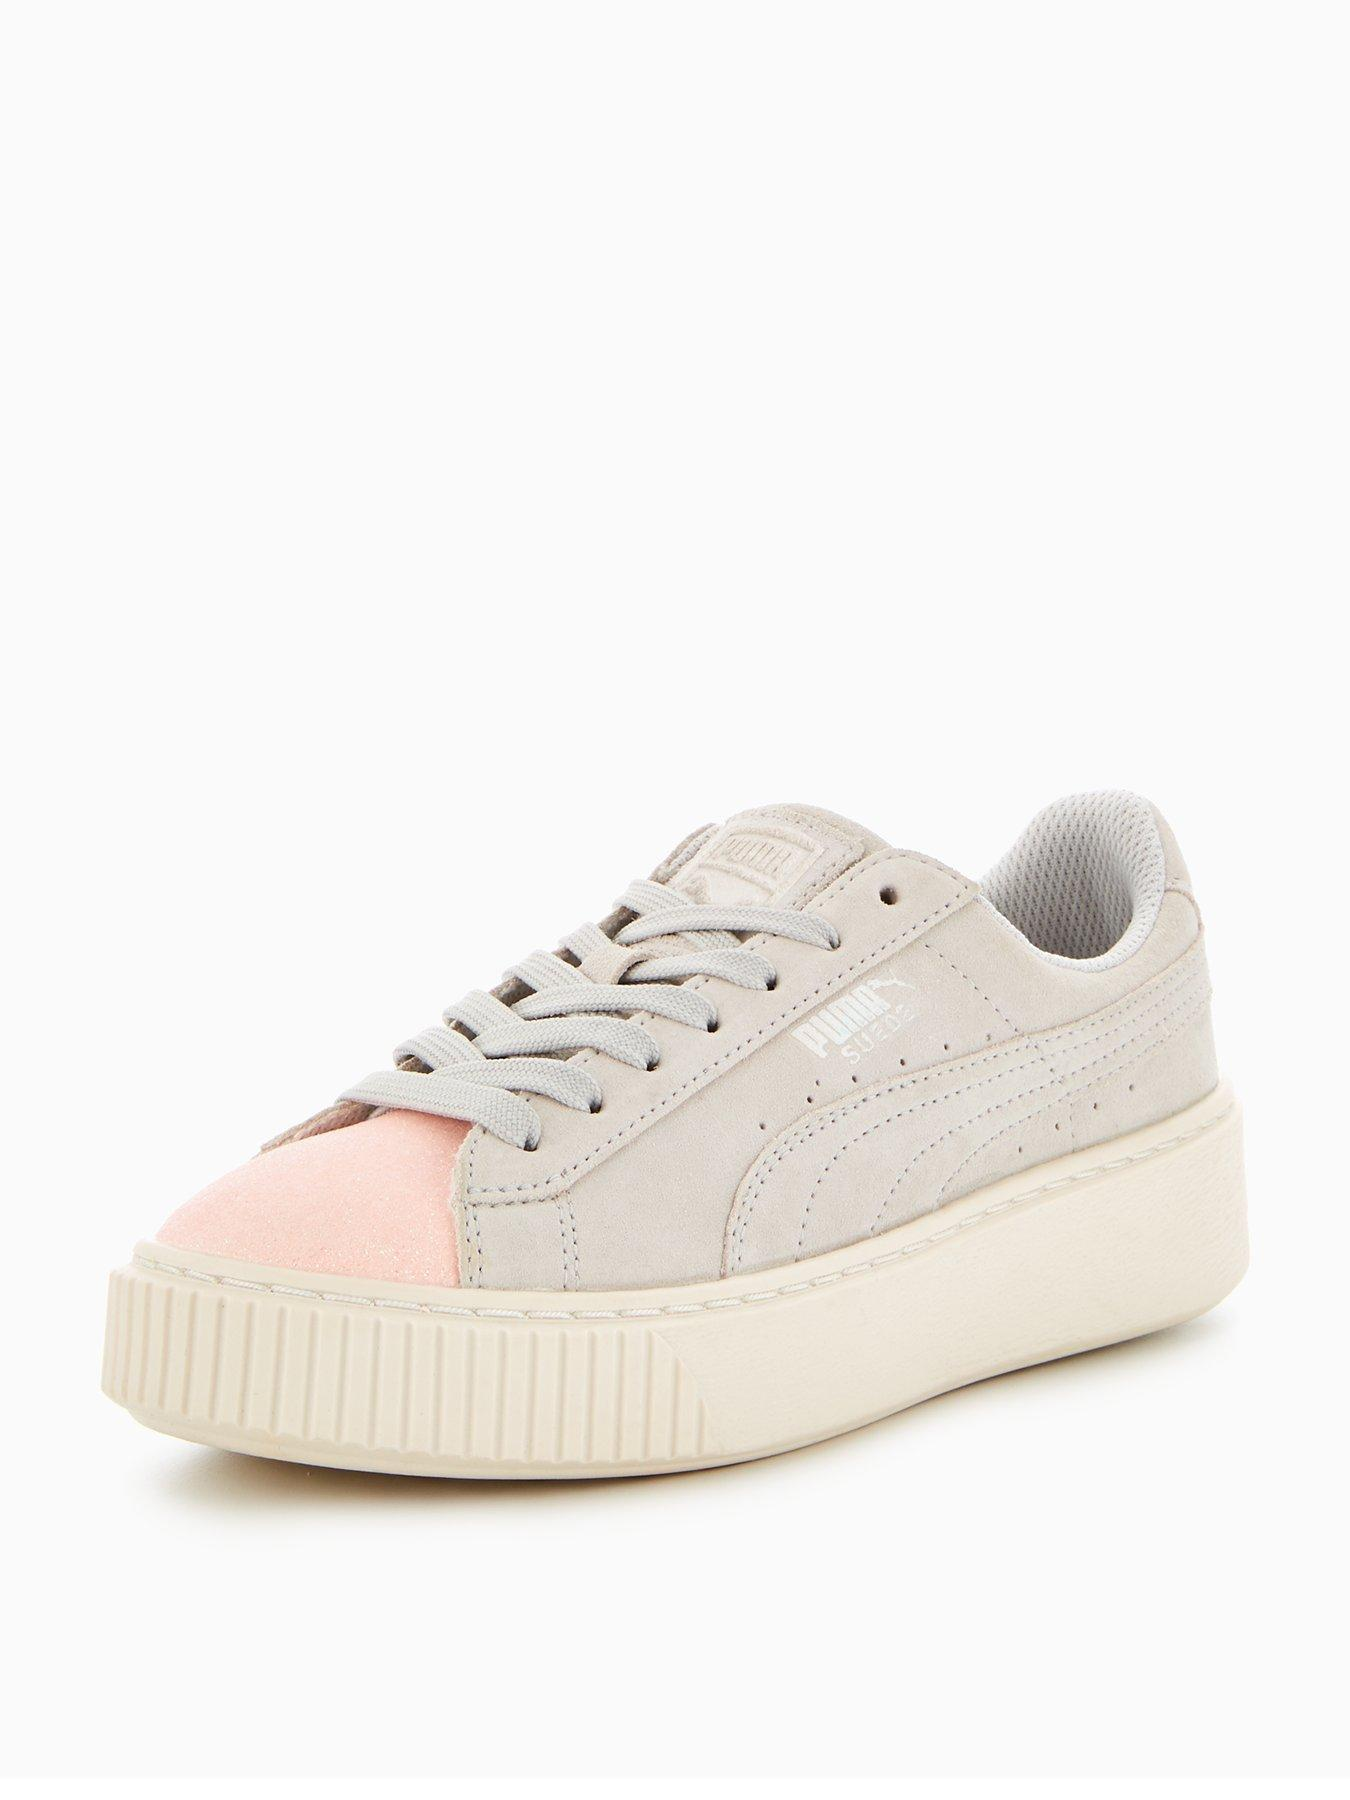 white and pink puma shoes girls 11th karaoke